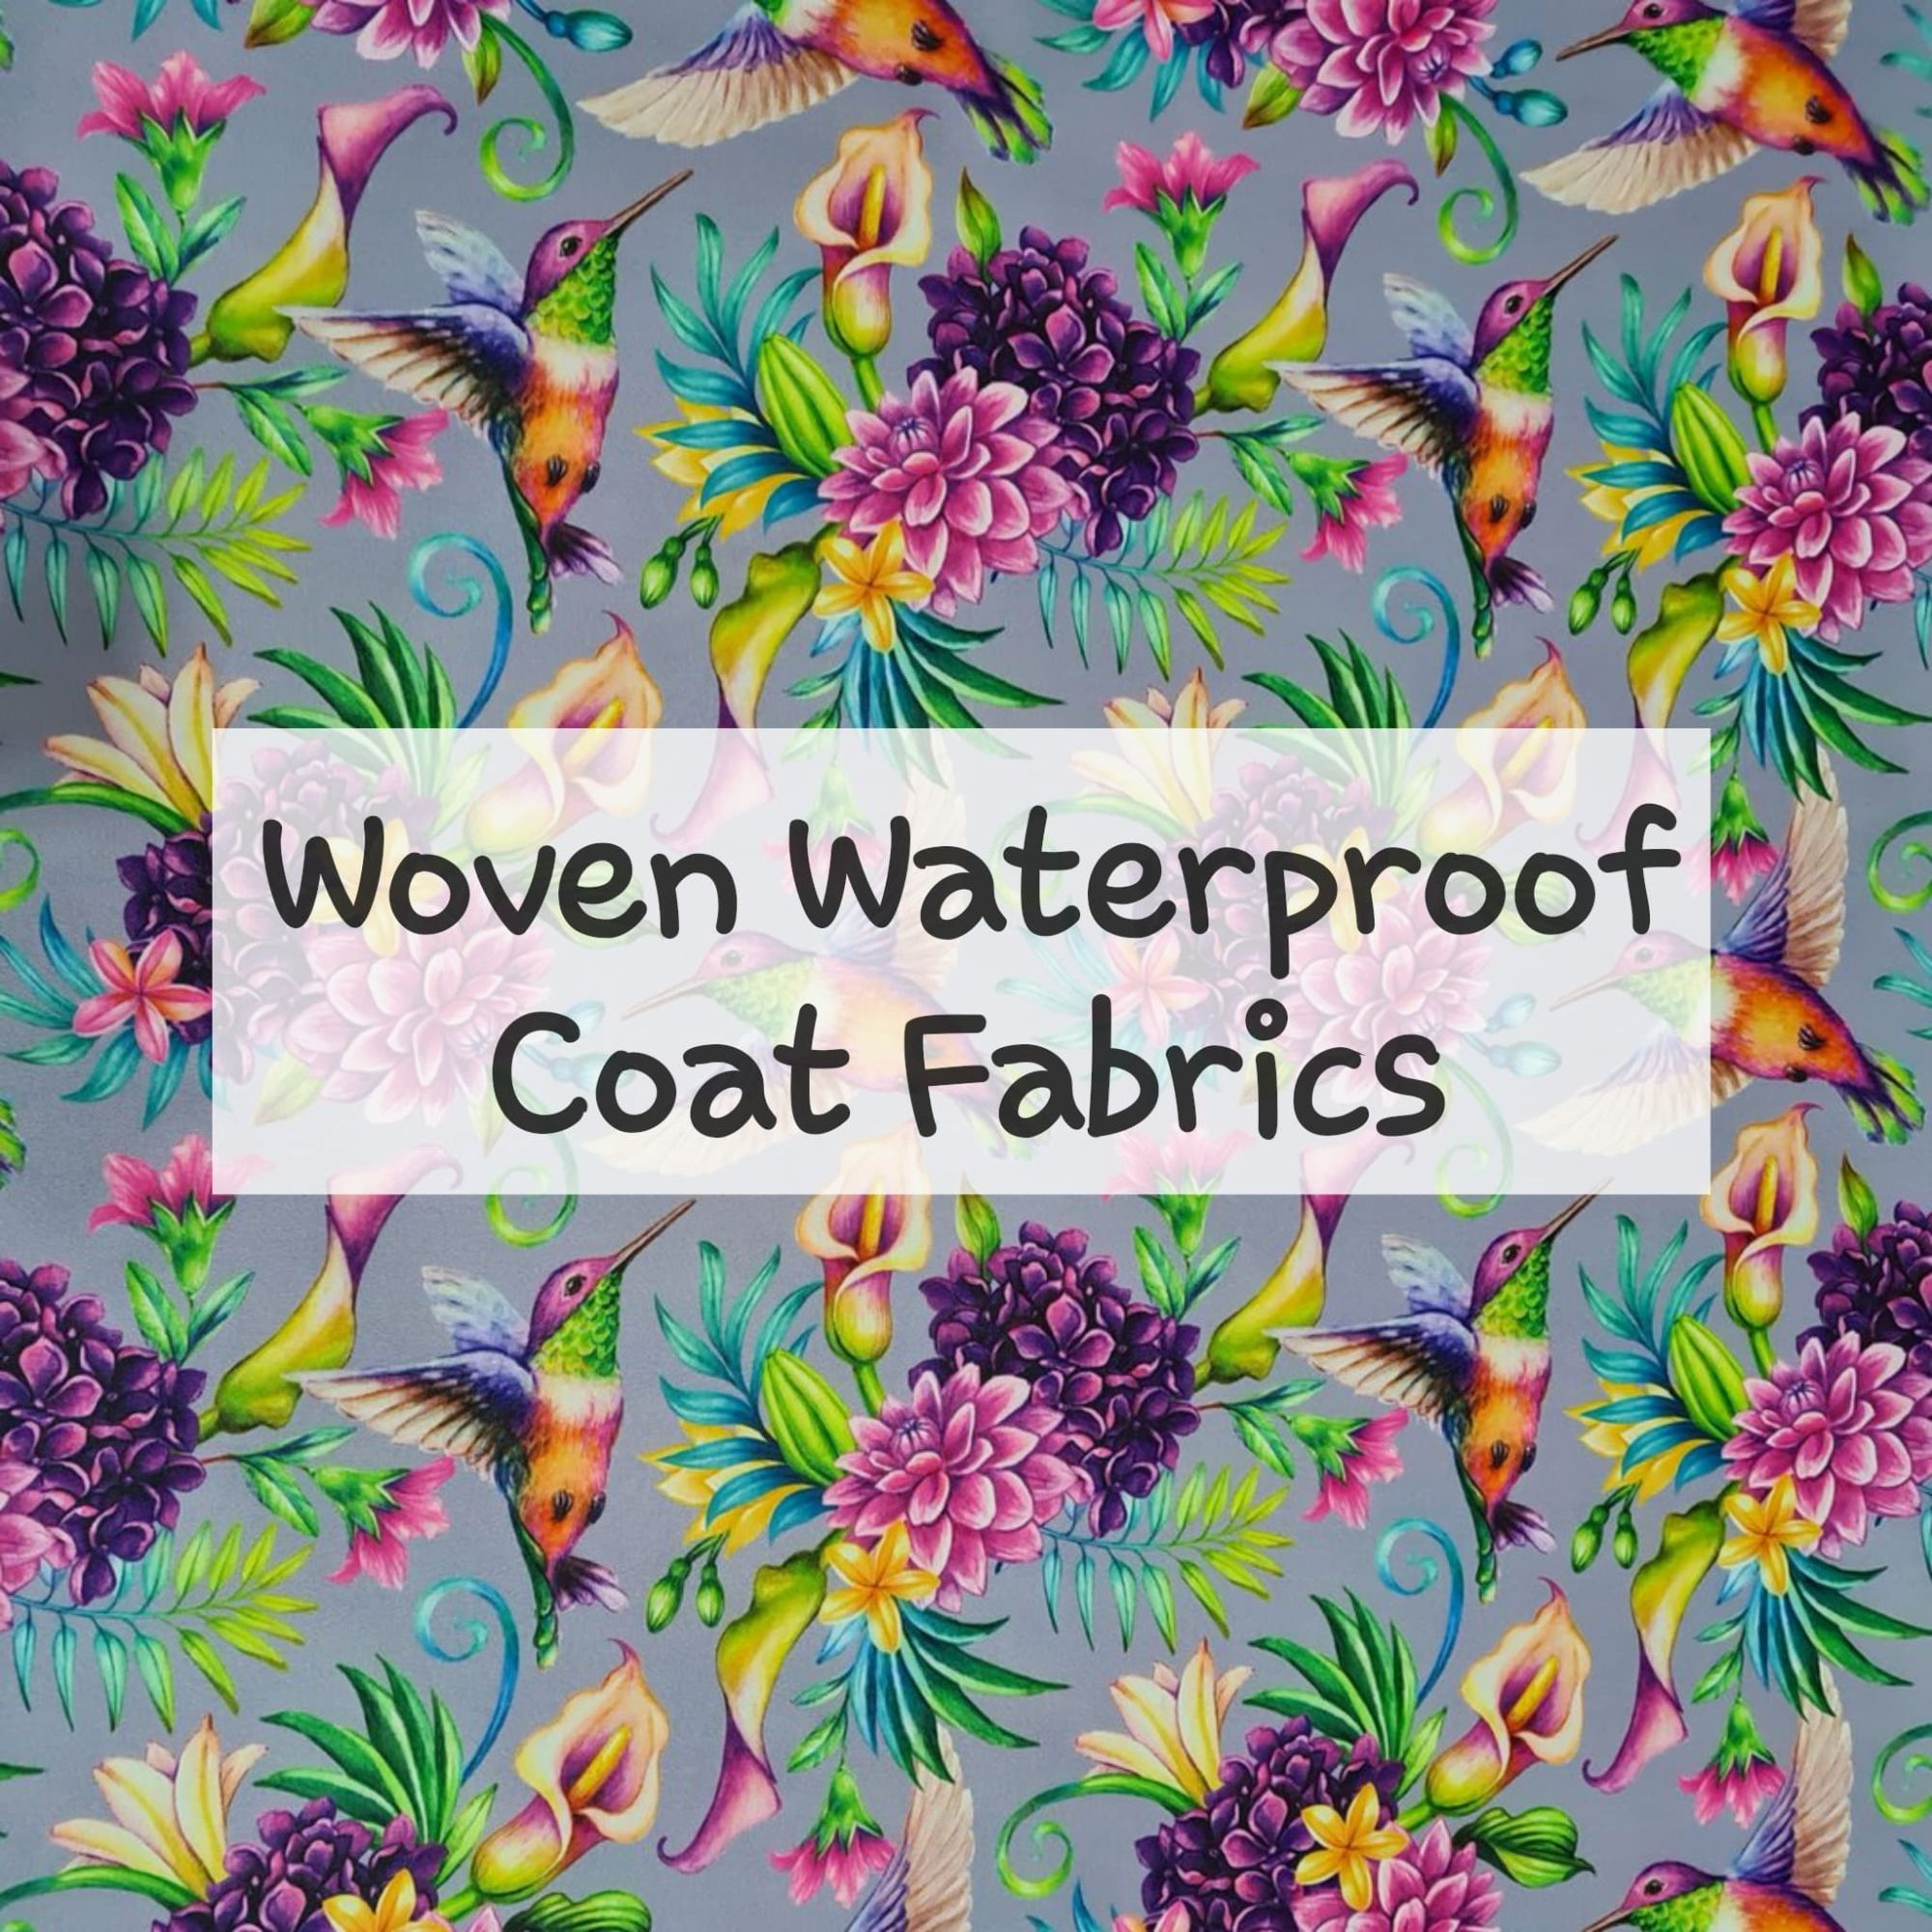 woven waterproof patterened coat fabrics